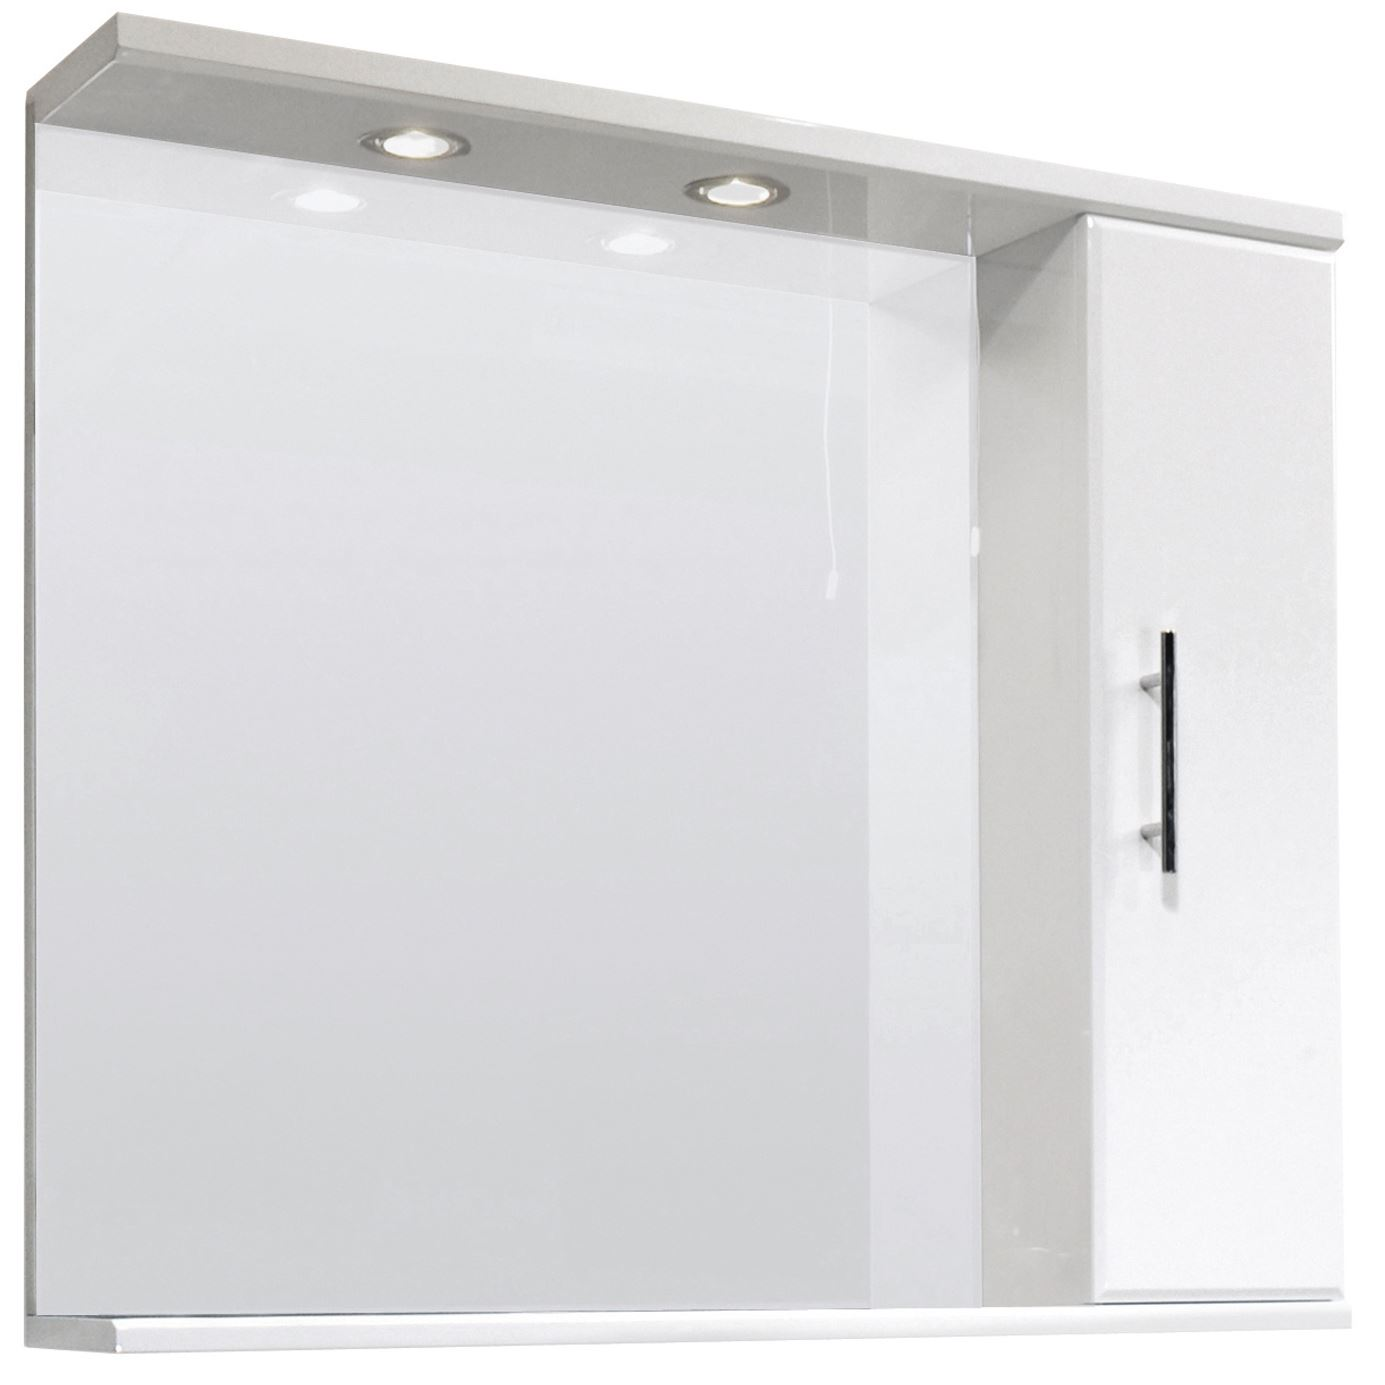 high gloss white bathroom mirror vanity cabinet inset light shelf